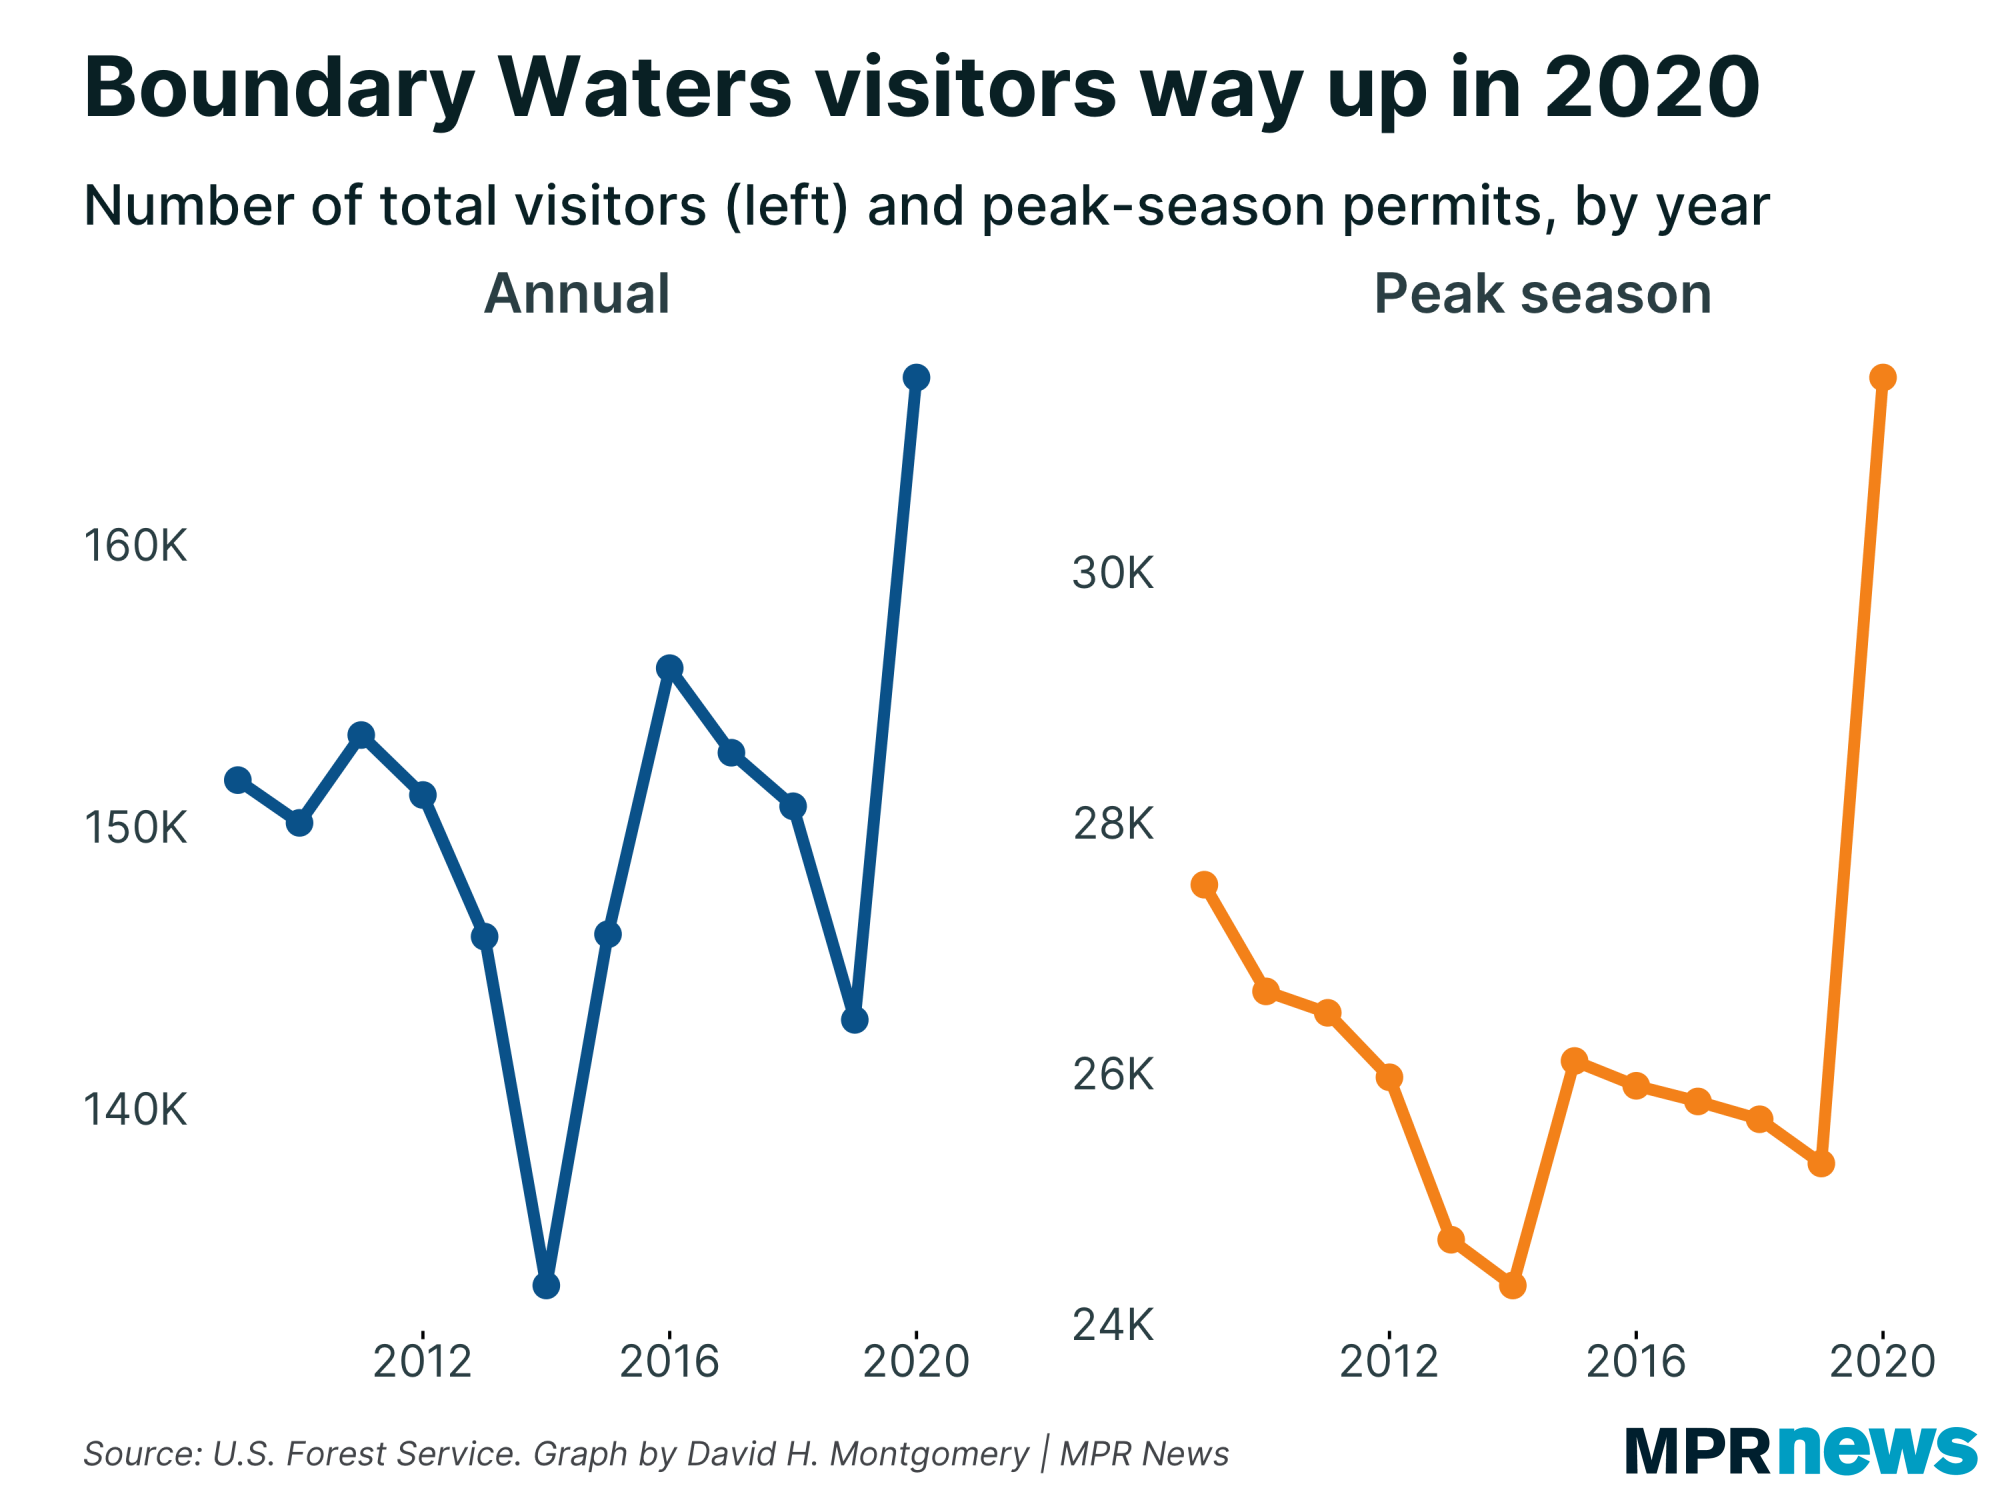 Graph showing number of Boundary Waters visitors per year